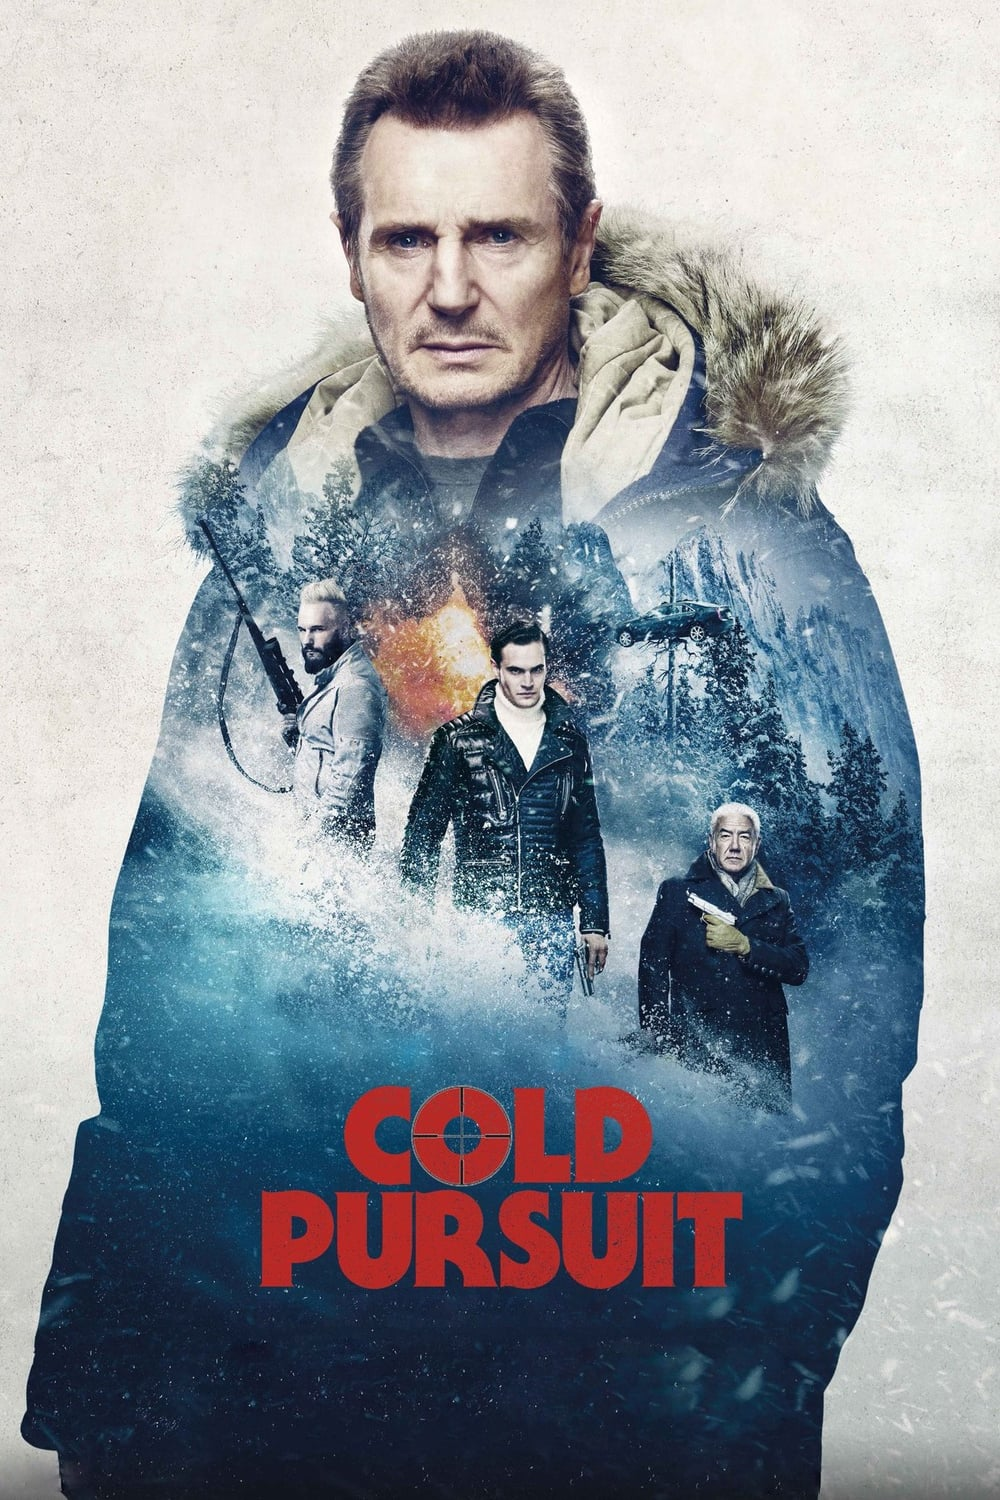 Poster and image movie Film Cold Pursuit - Karstas kraujas -  2019